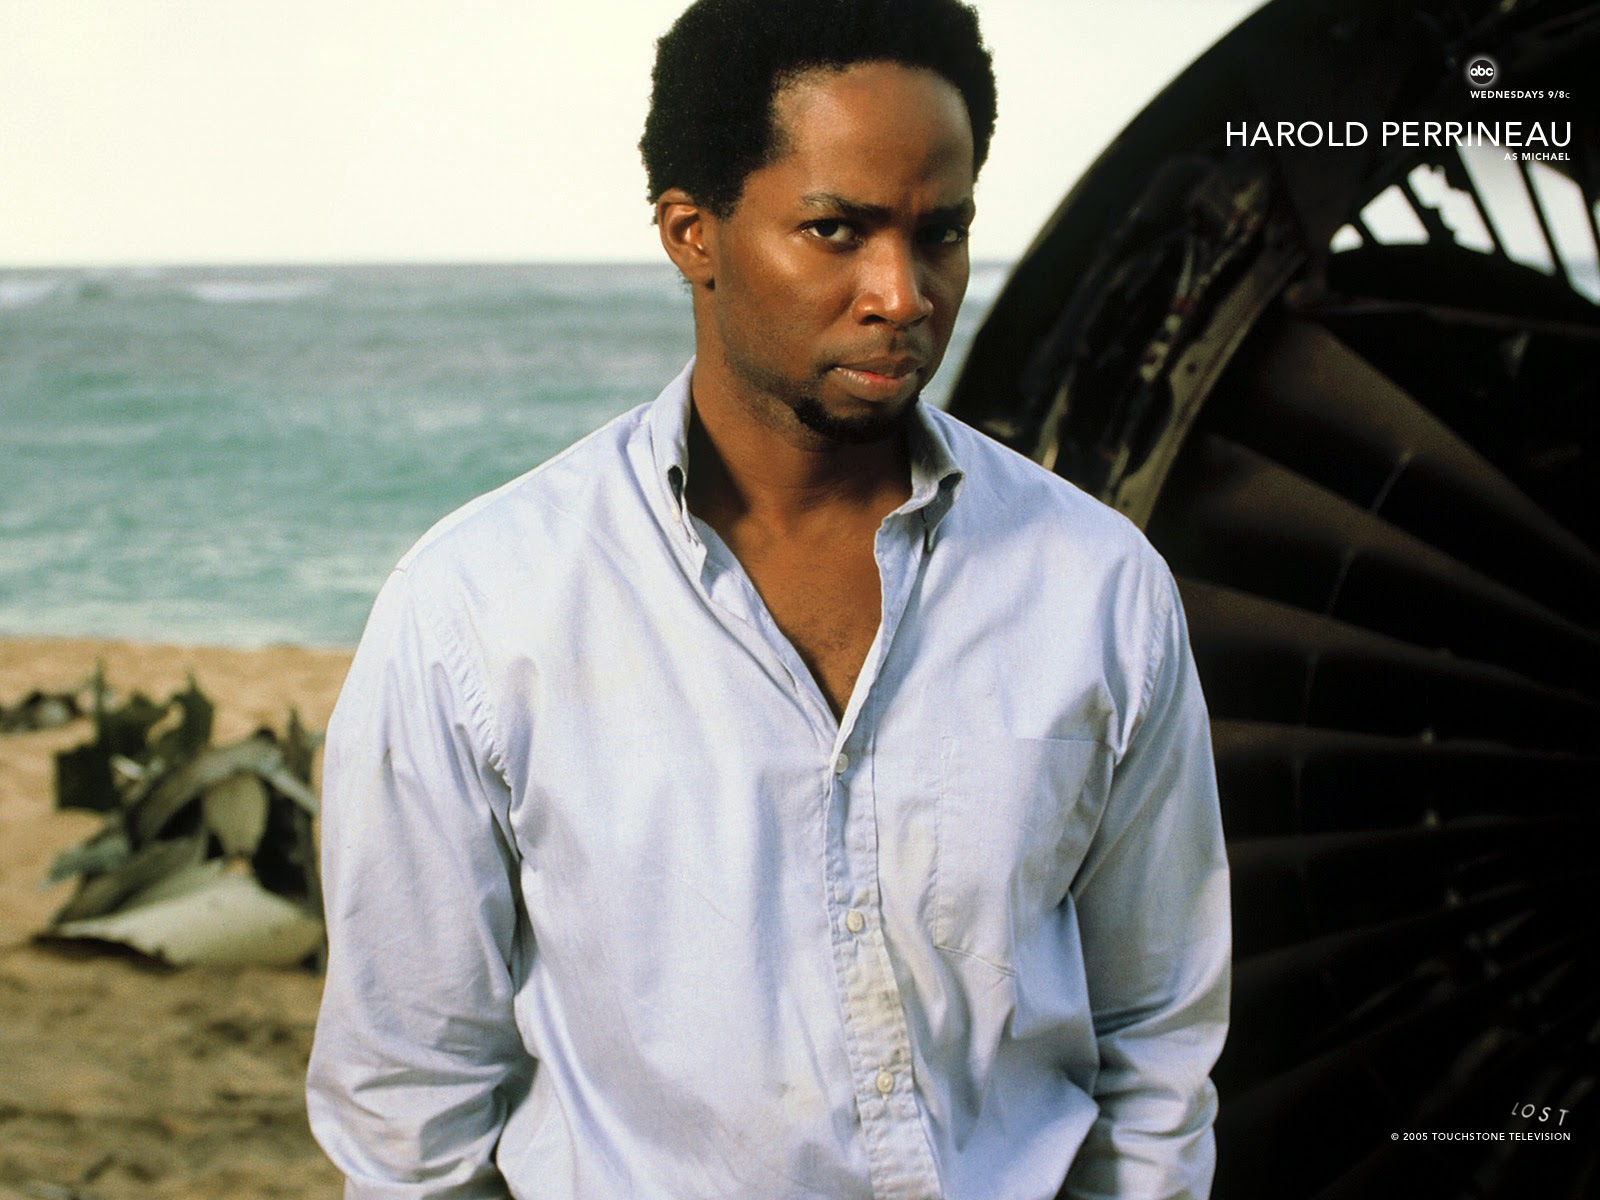 lost Television serial Harold perrineau Wallpaper